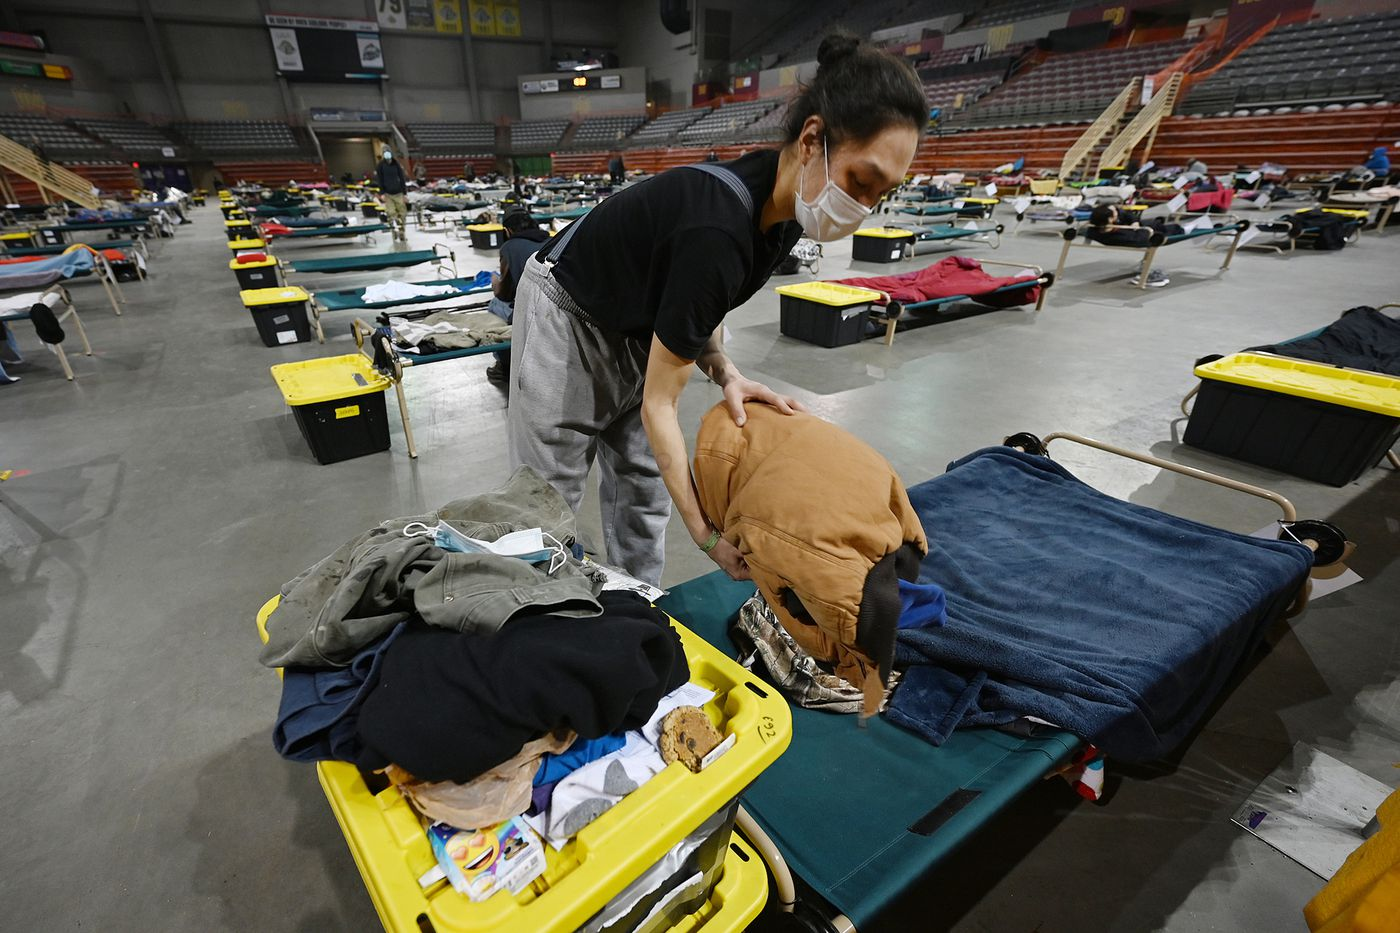 John Biesemeier, who works seasonally as a roofer, began staying at the mass emergency shelter at Sullivan Arena in January and has been receiving meals since Thanksgiving. Photographed on Wednesday, Feb. 24. (Bill Roth / ADN)